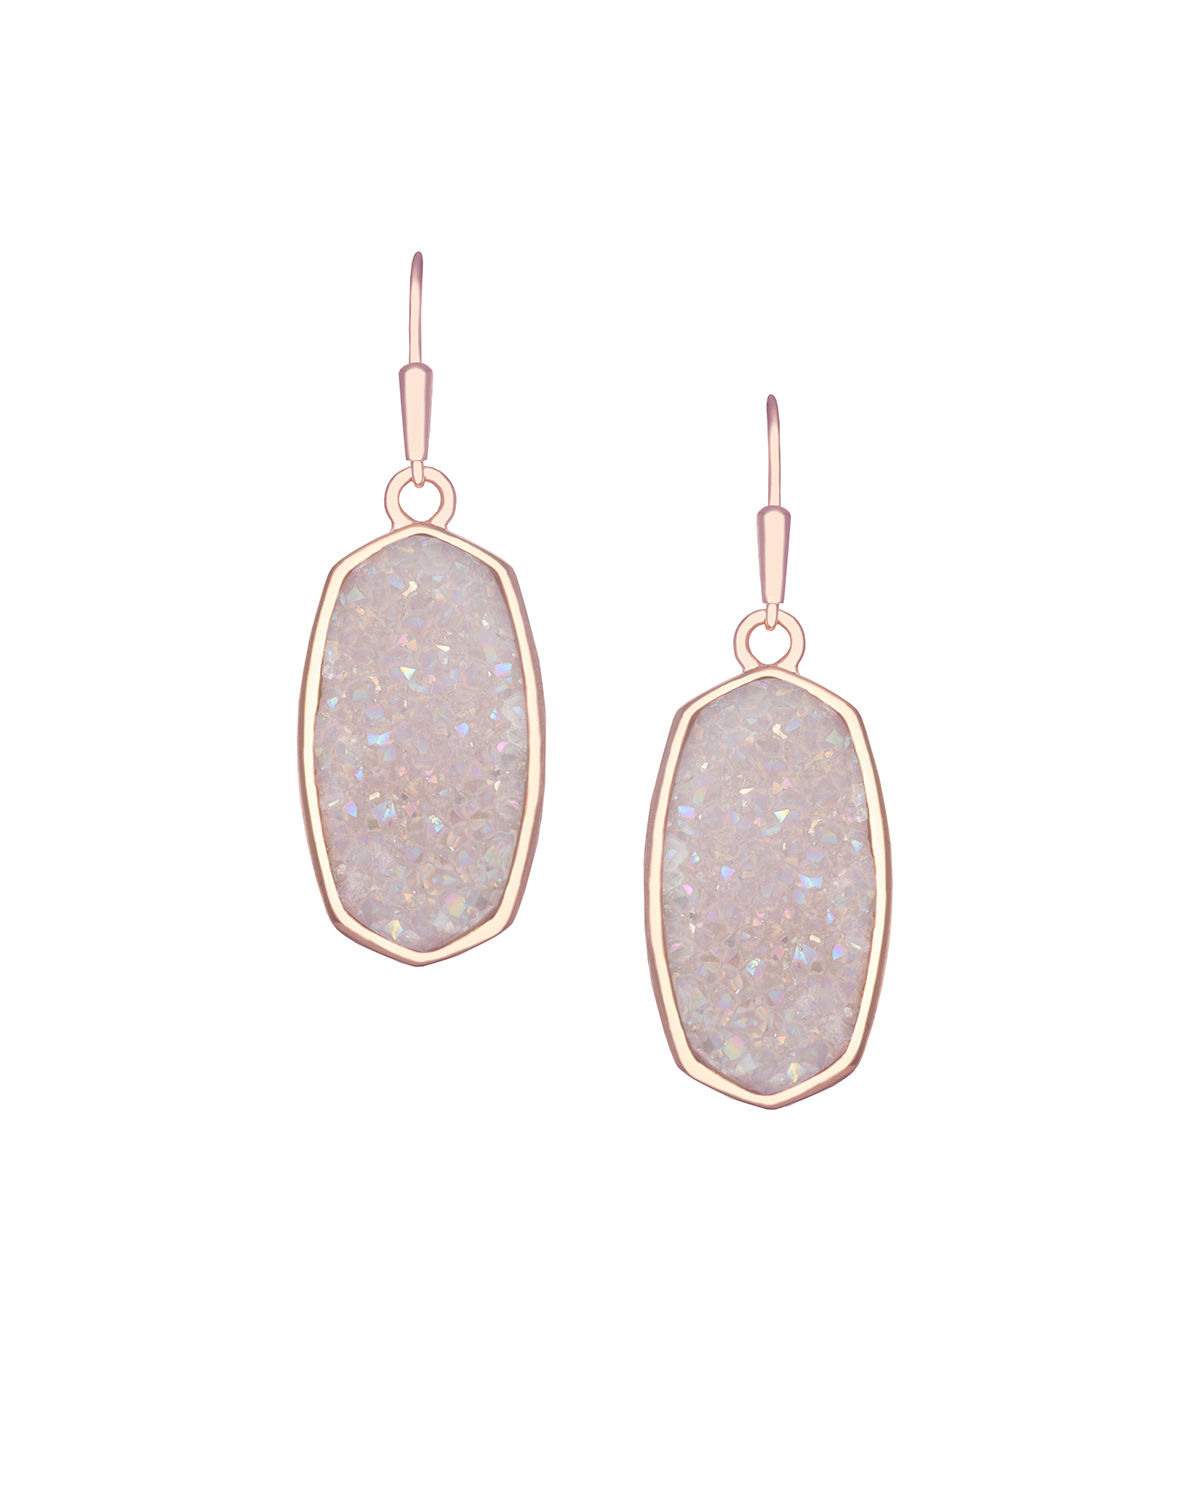 Lyst Kendra Scott Danay Druzy Agate Earrings in Purple